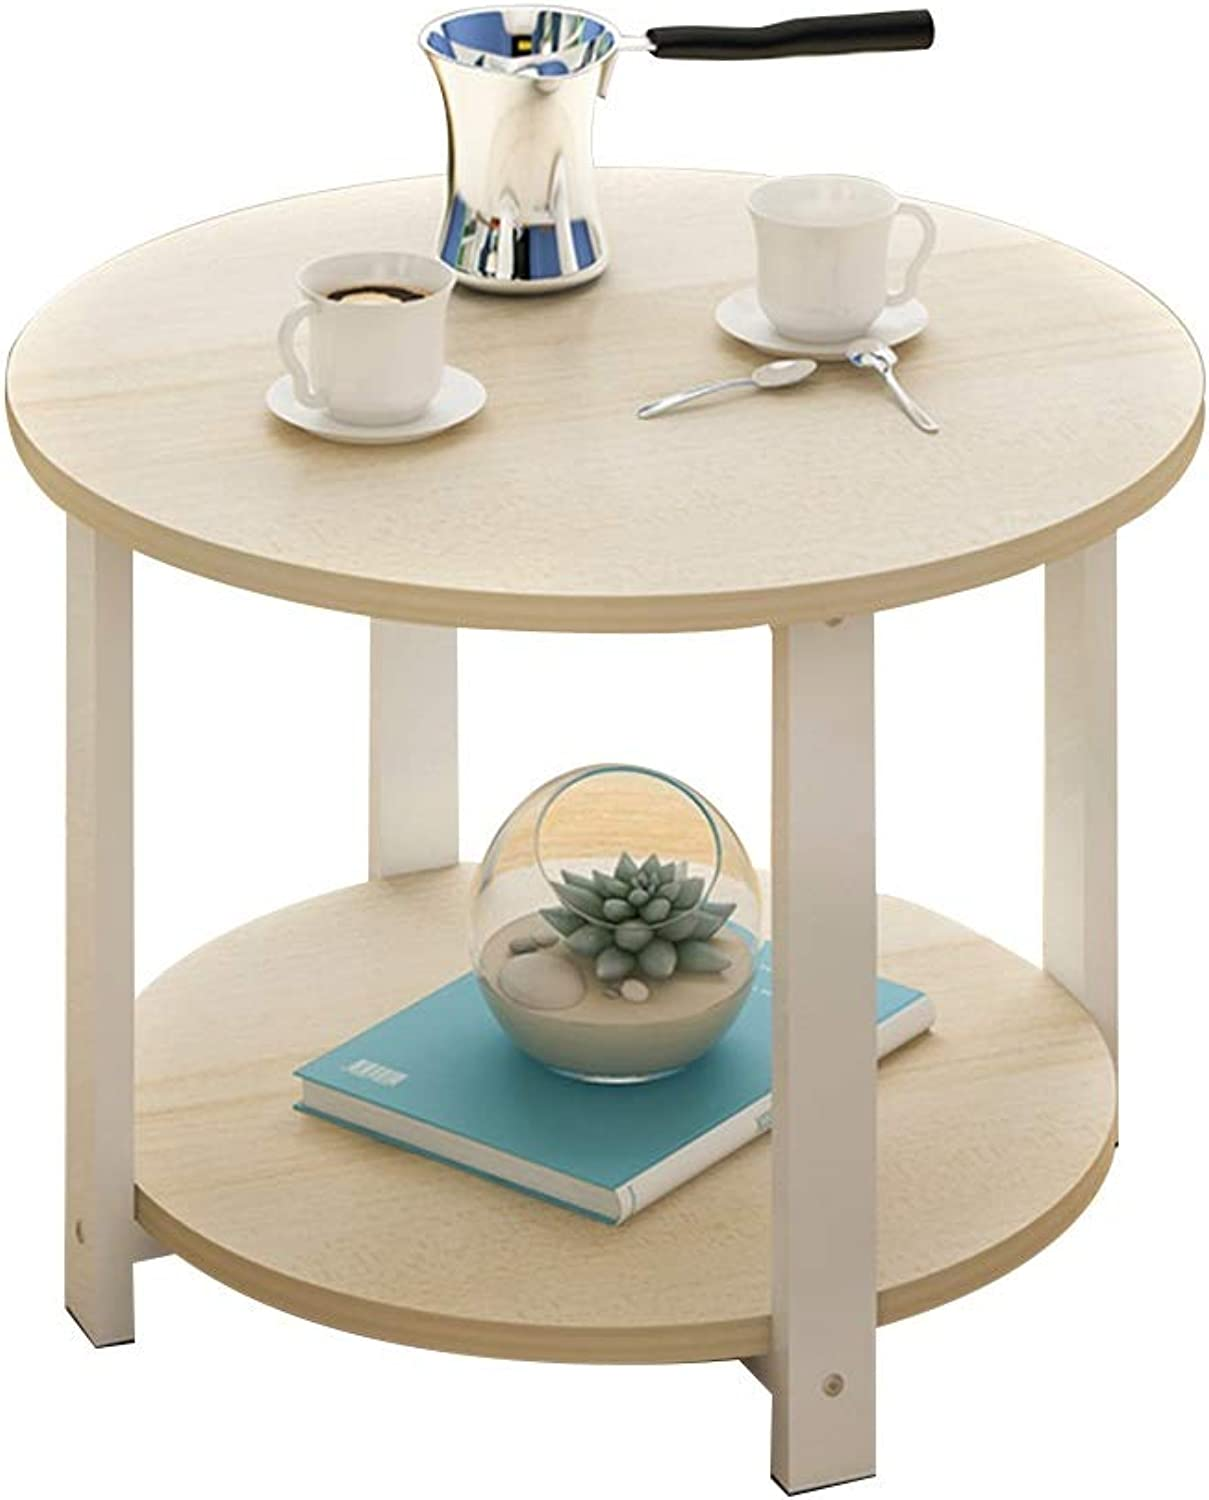 Table Small Coffee Table, Multifunction Snack Table Double Storey Side Table Large Countertop Nordic Style Household Storage Table Small Round Table (Size   60  60  43cm)